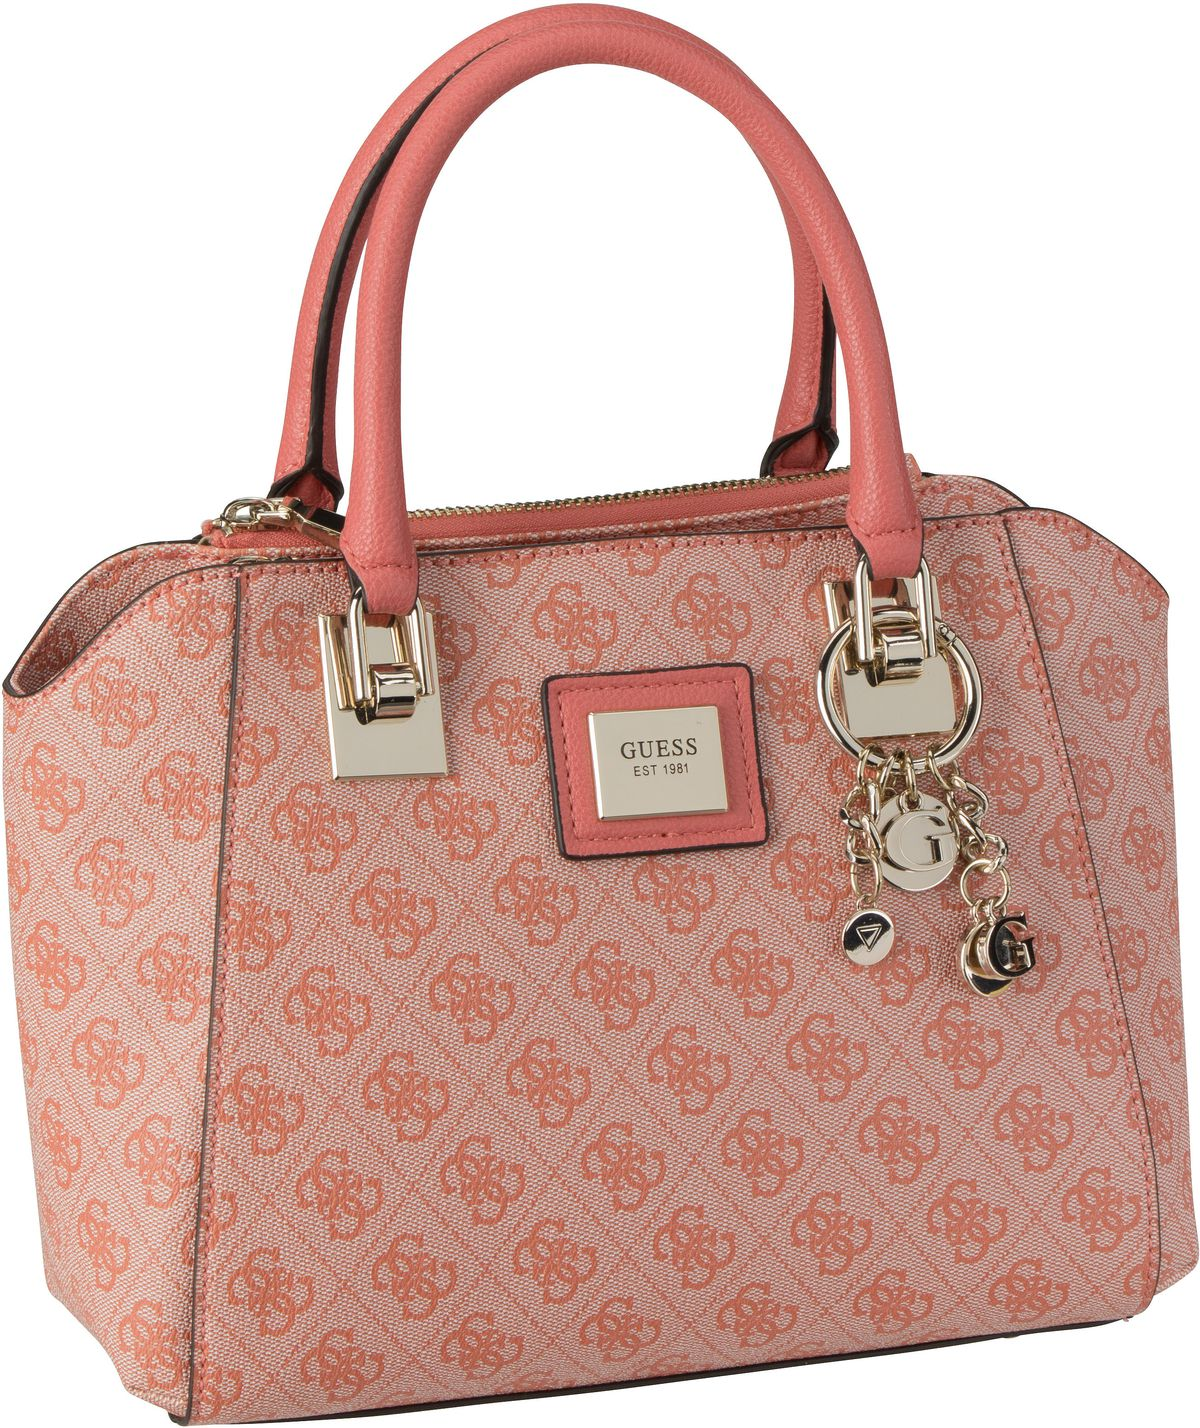 Handtasche Candace Society Satchel Coral